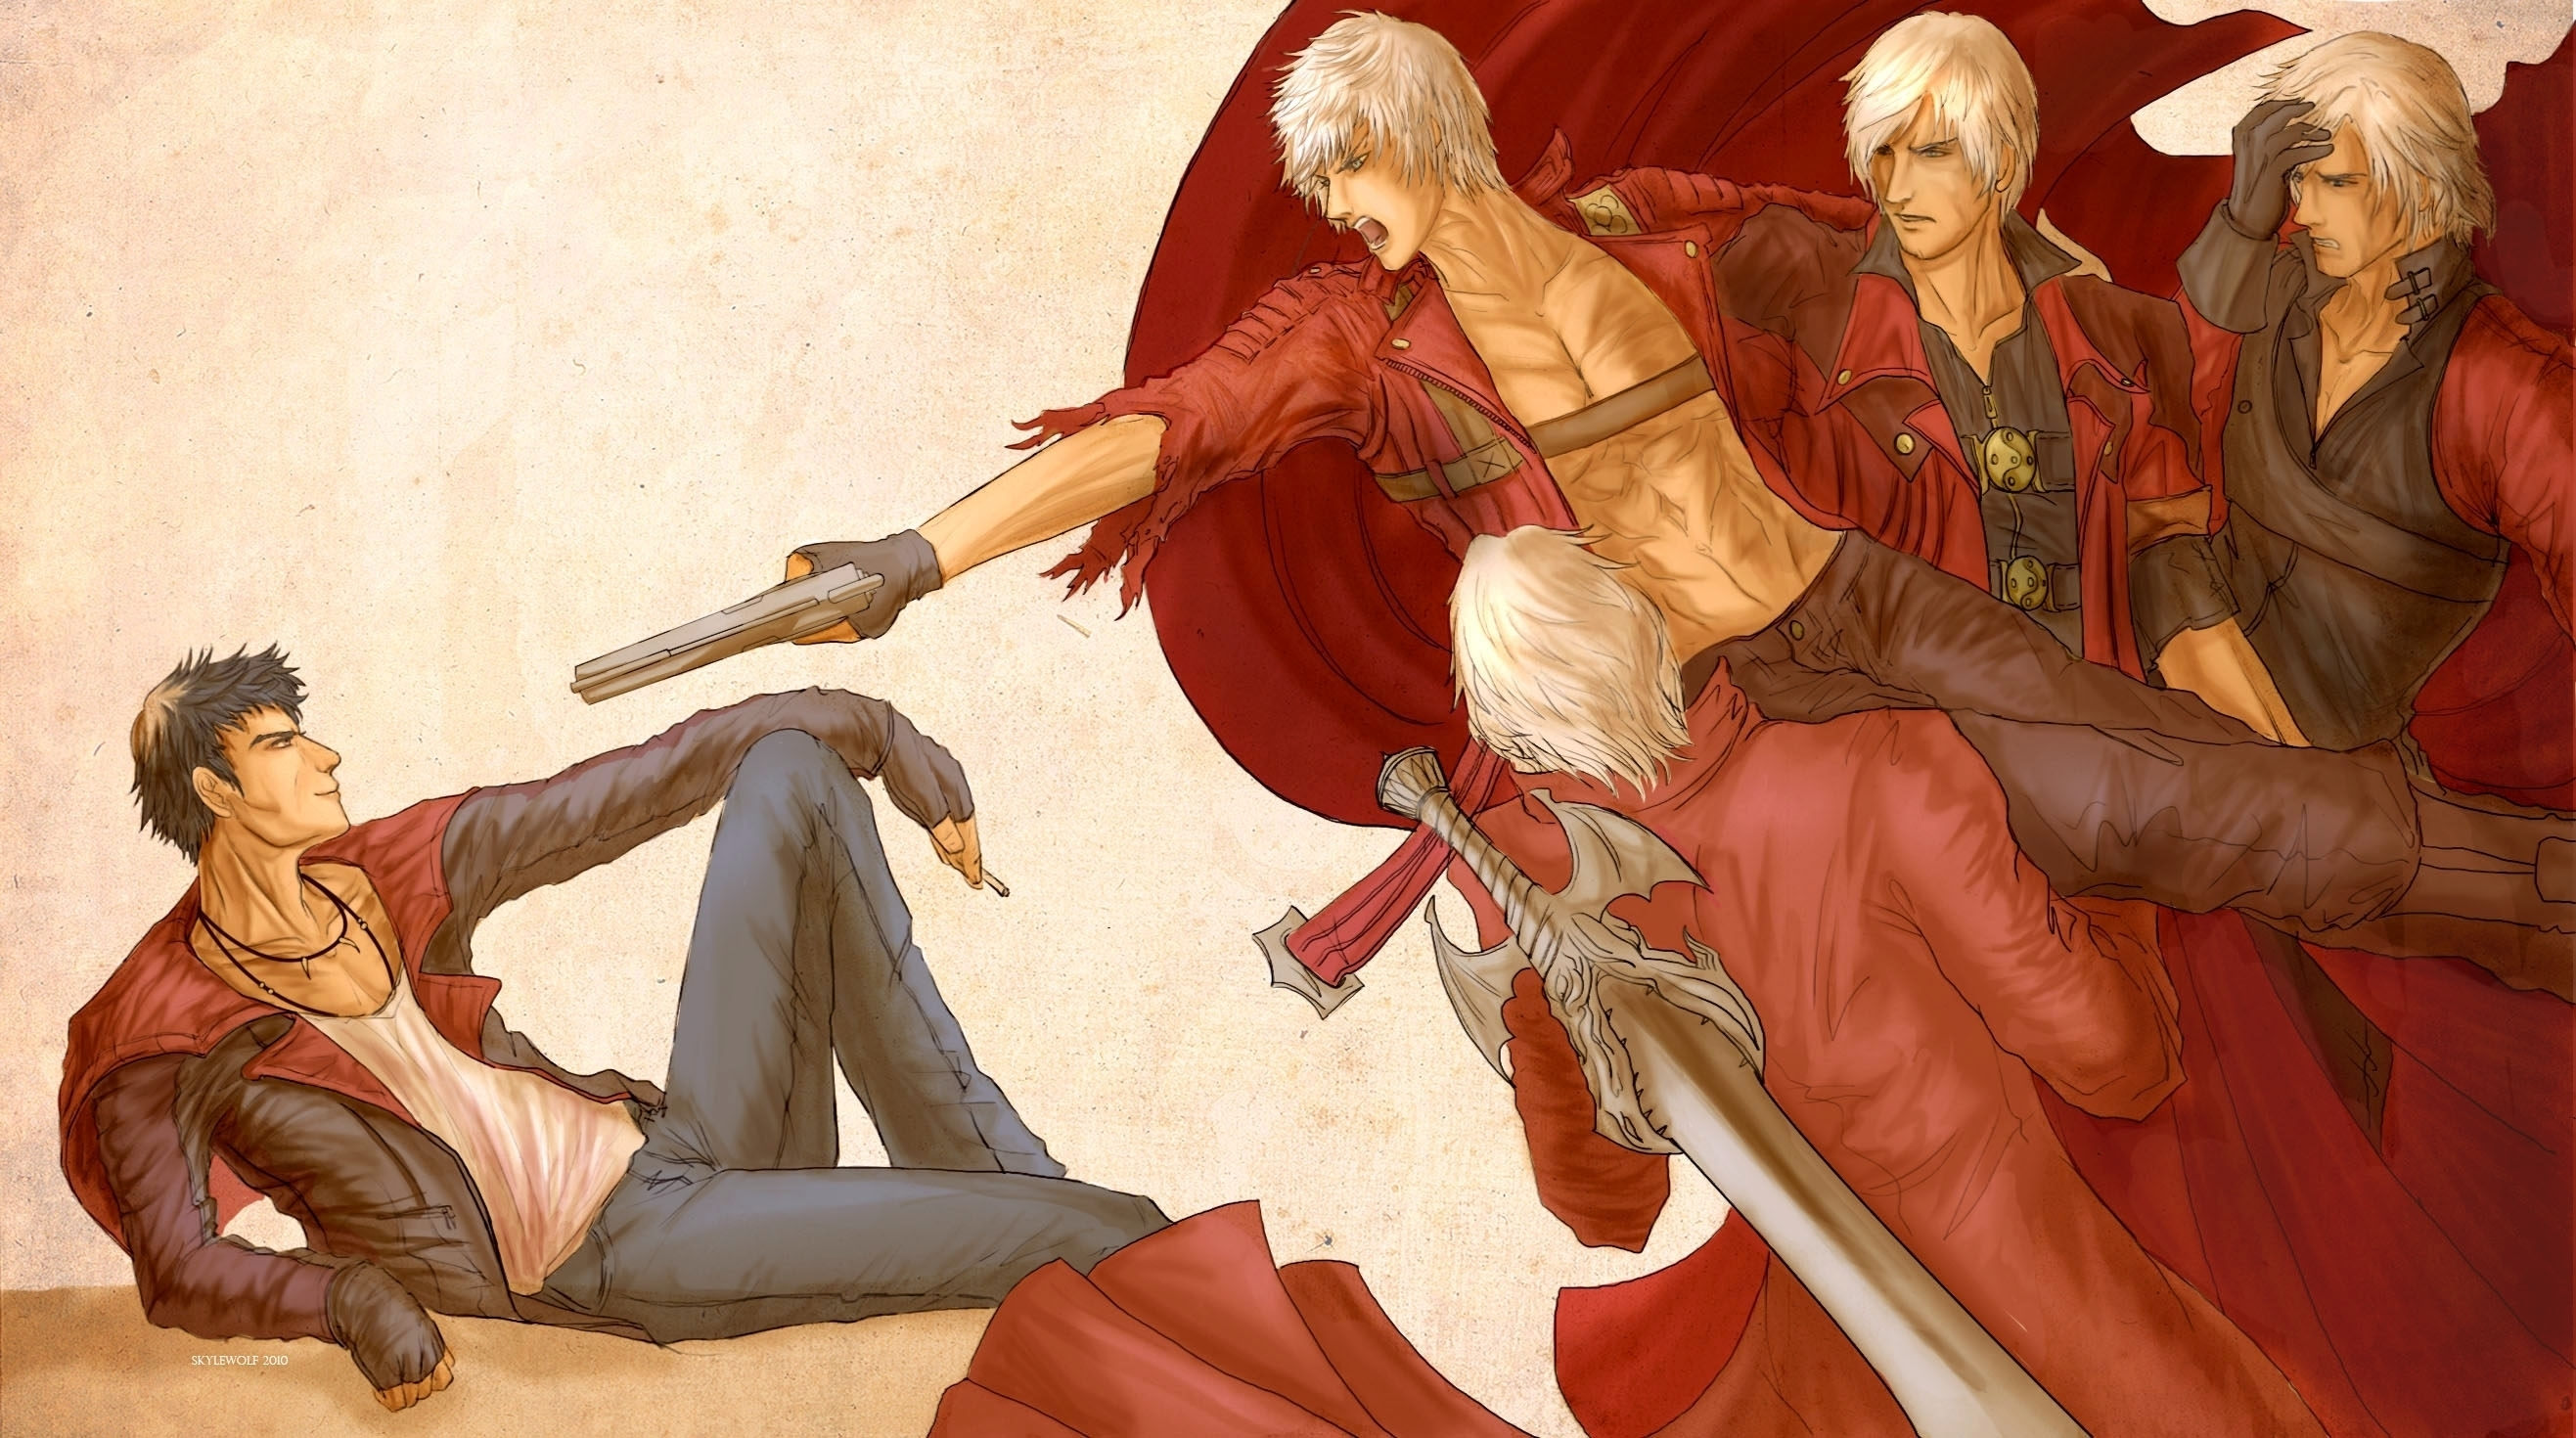 Bad Day For A Hang Over Dmc Devilmaycry Meme Https T Co